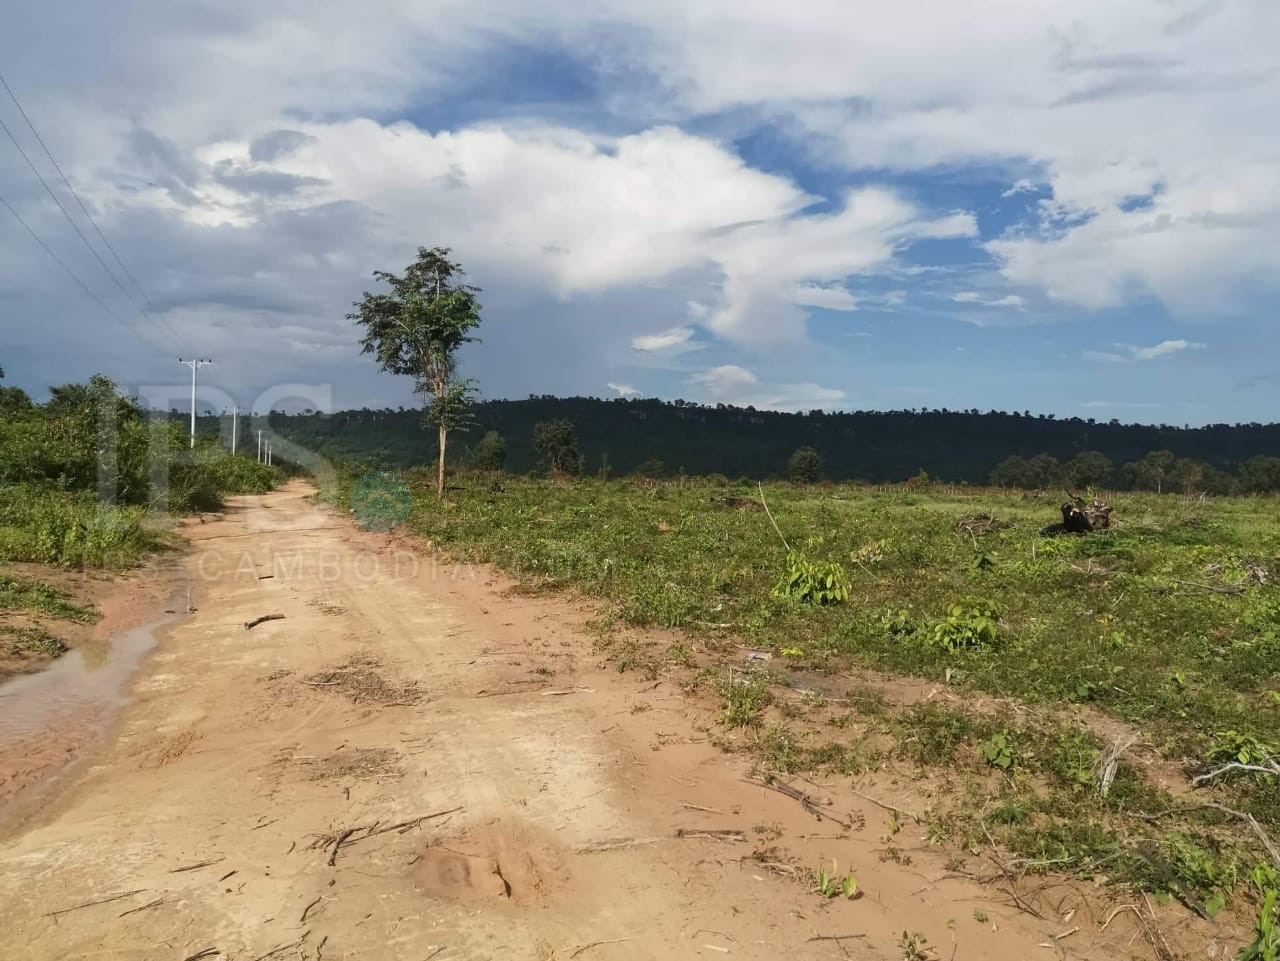 10 Hectares Land For Sale - Banteay Srei, Siem Reap